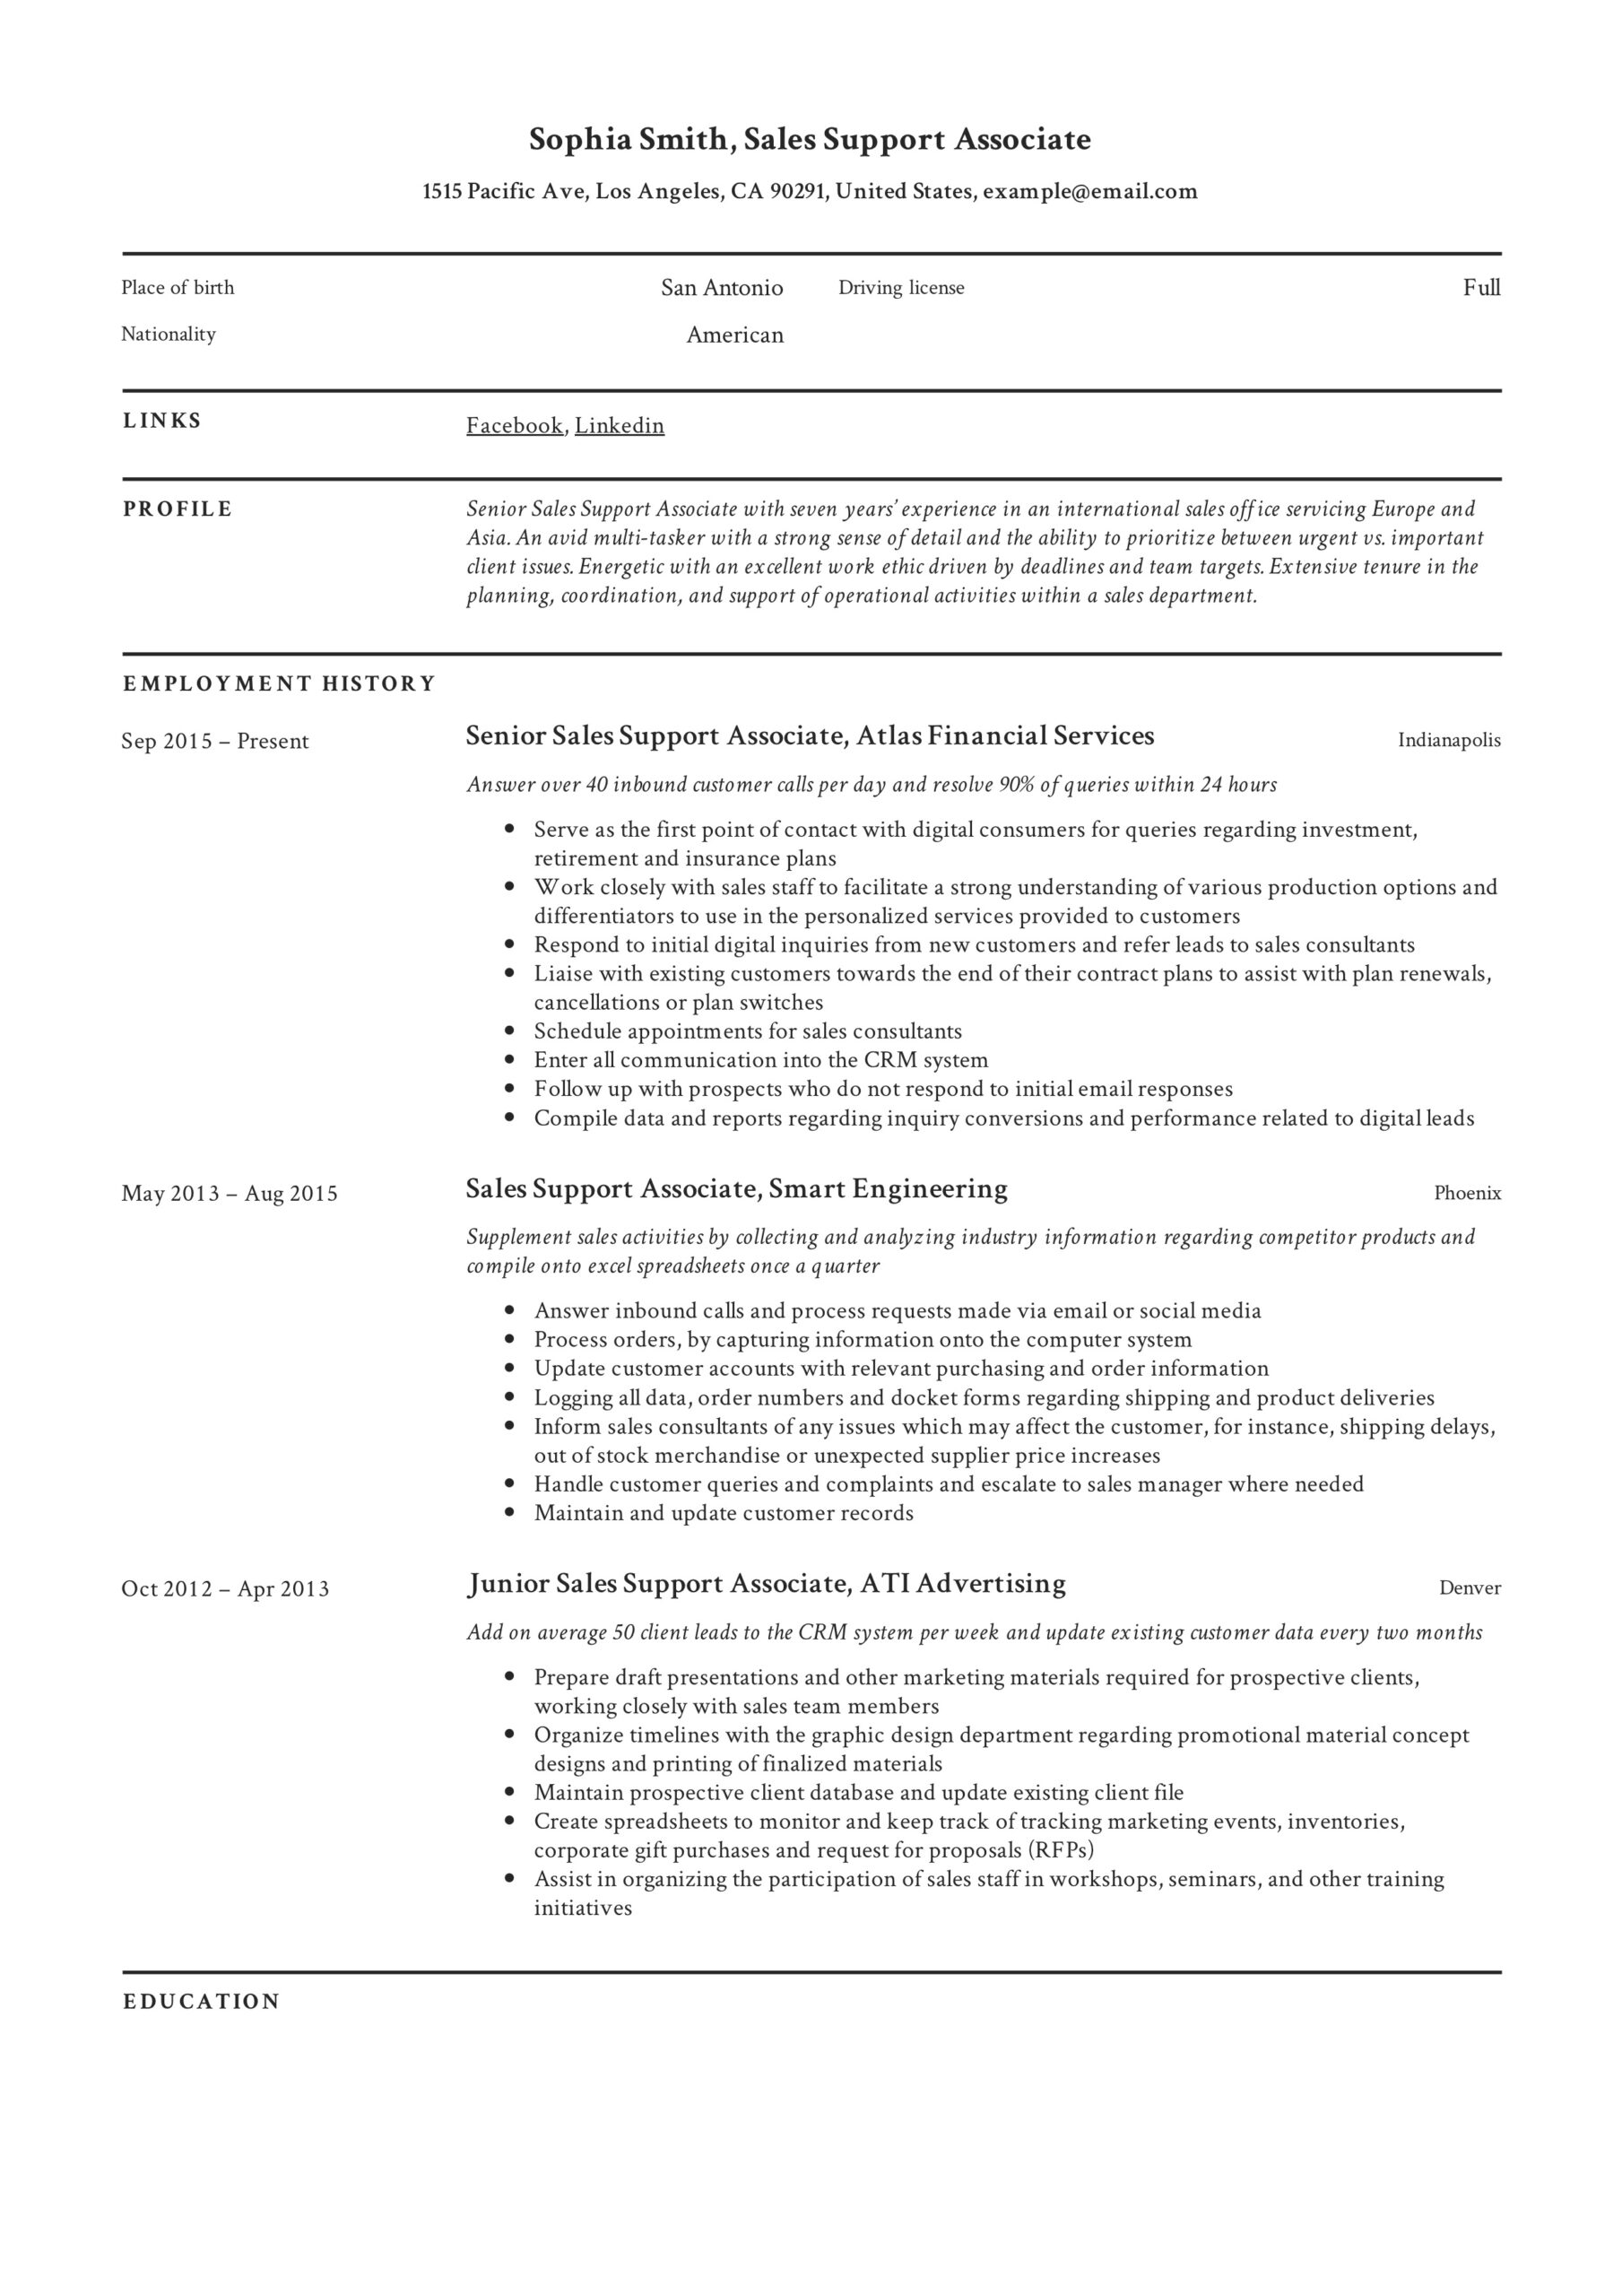 support associate resume guide examples customer example putting sports on freelance Resume Customer Support Associate Resume